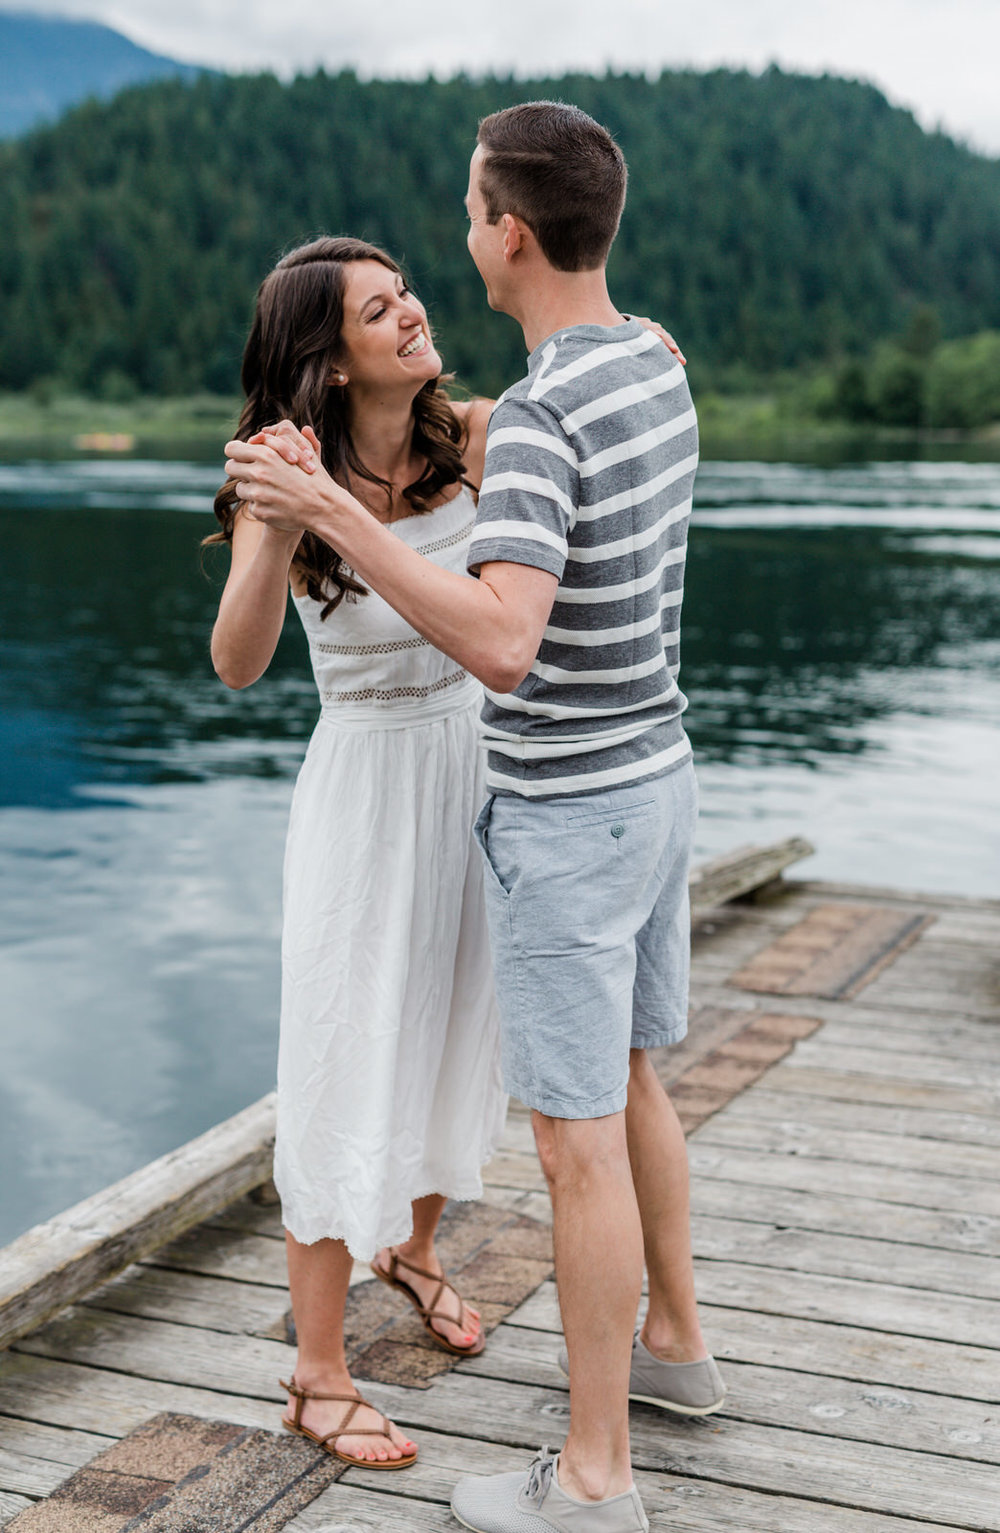 Pitt Lake Engagement Photos, Jennifer Picard Photography, Vancouver Wedding Photographer, Vancouver Engagement Photographer